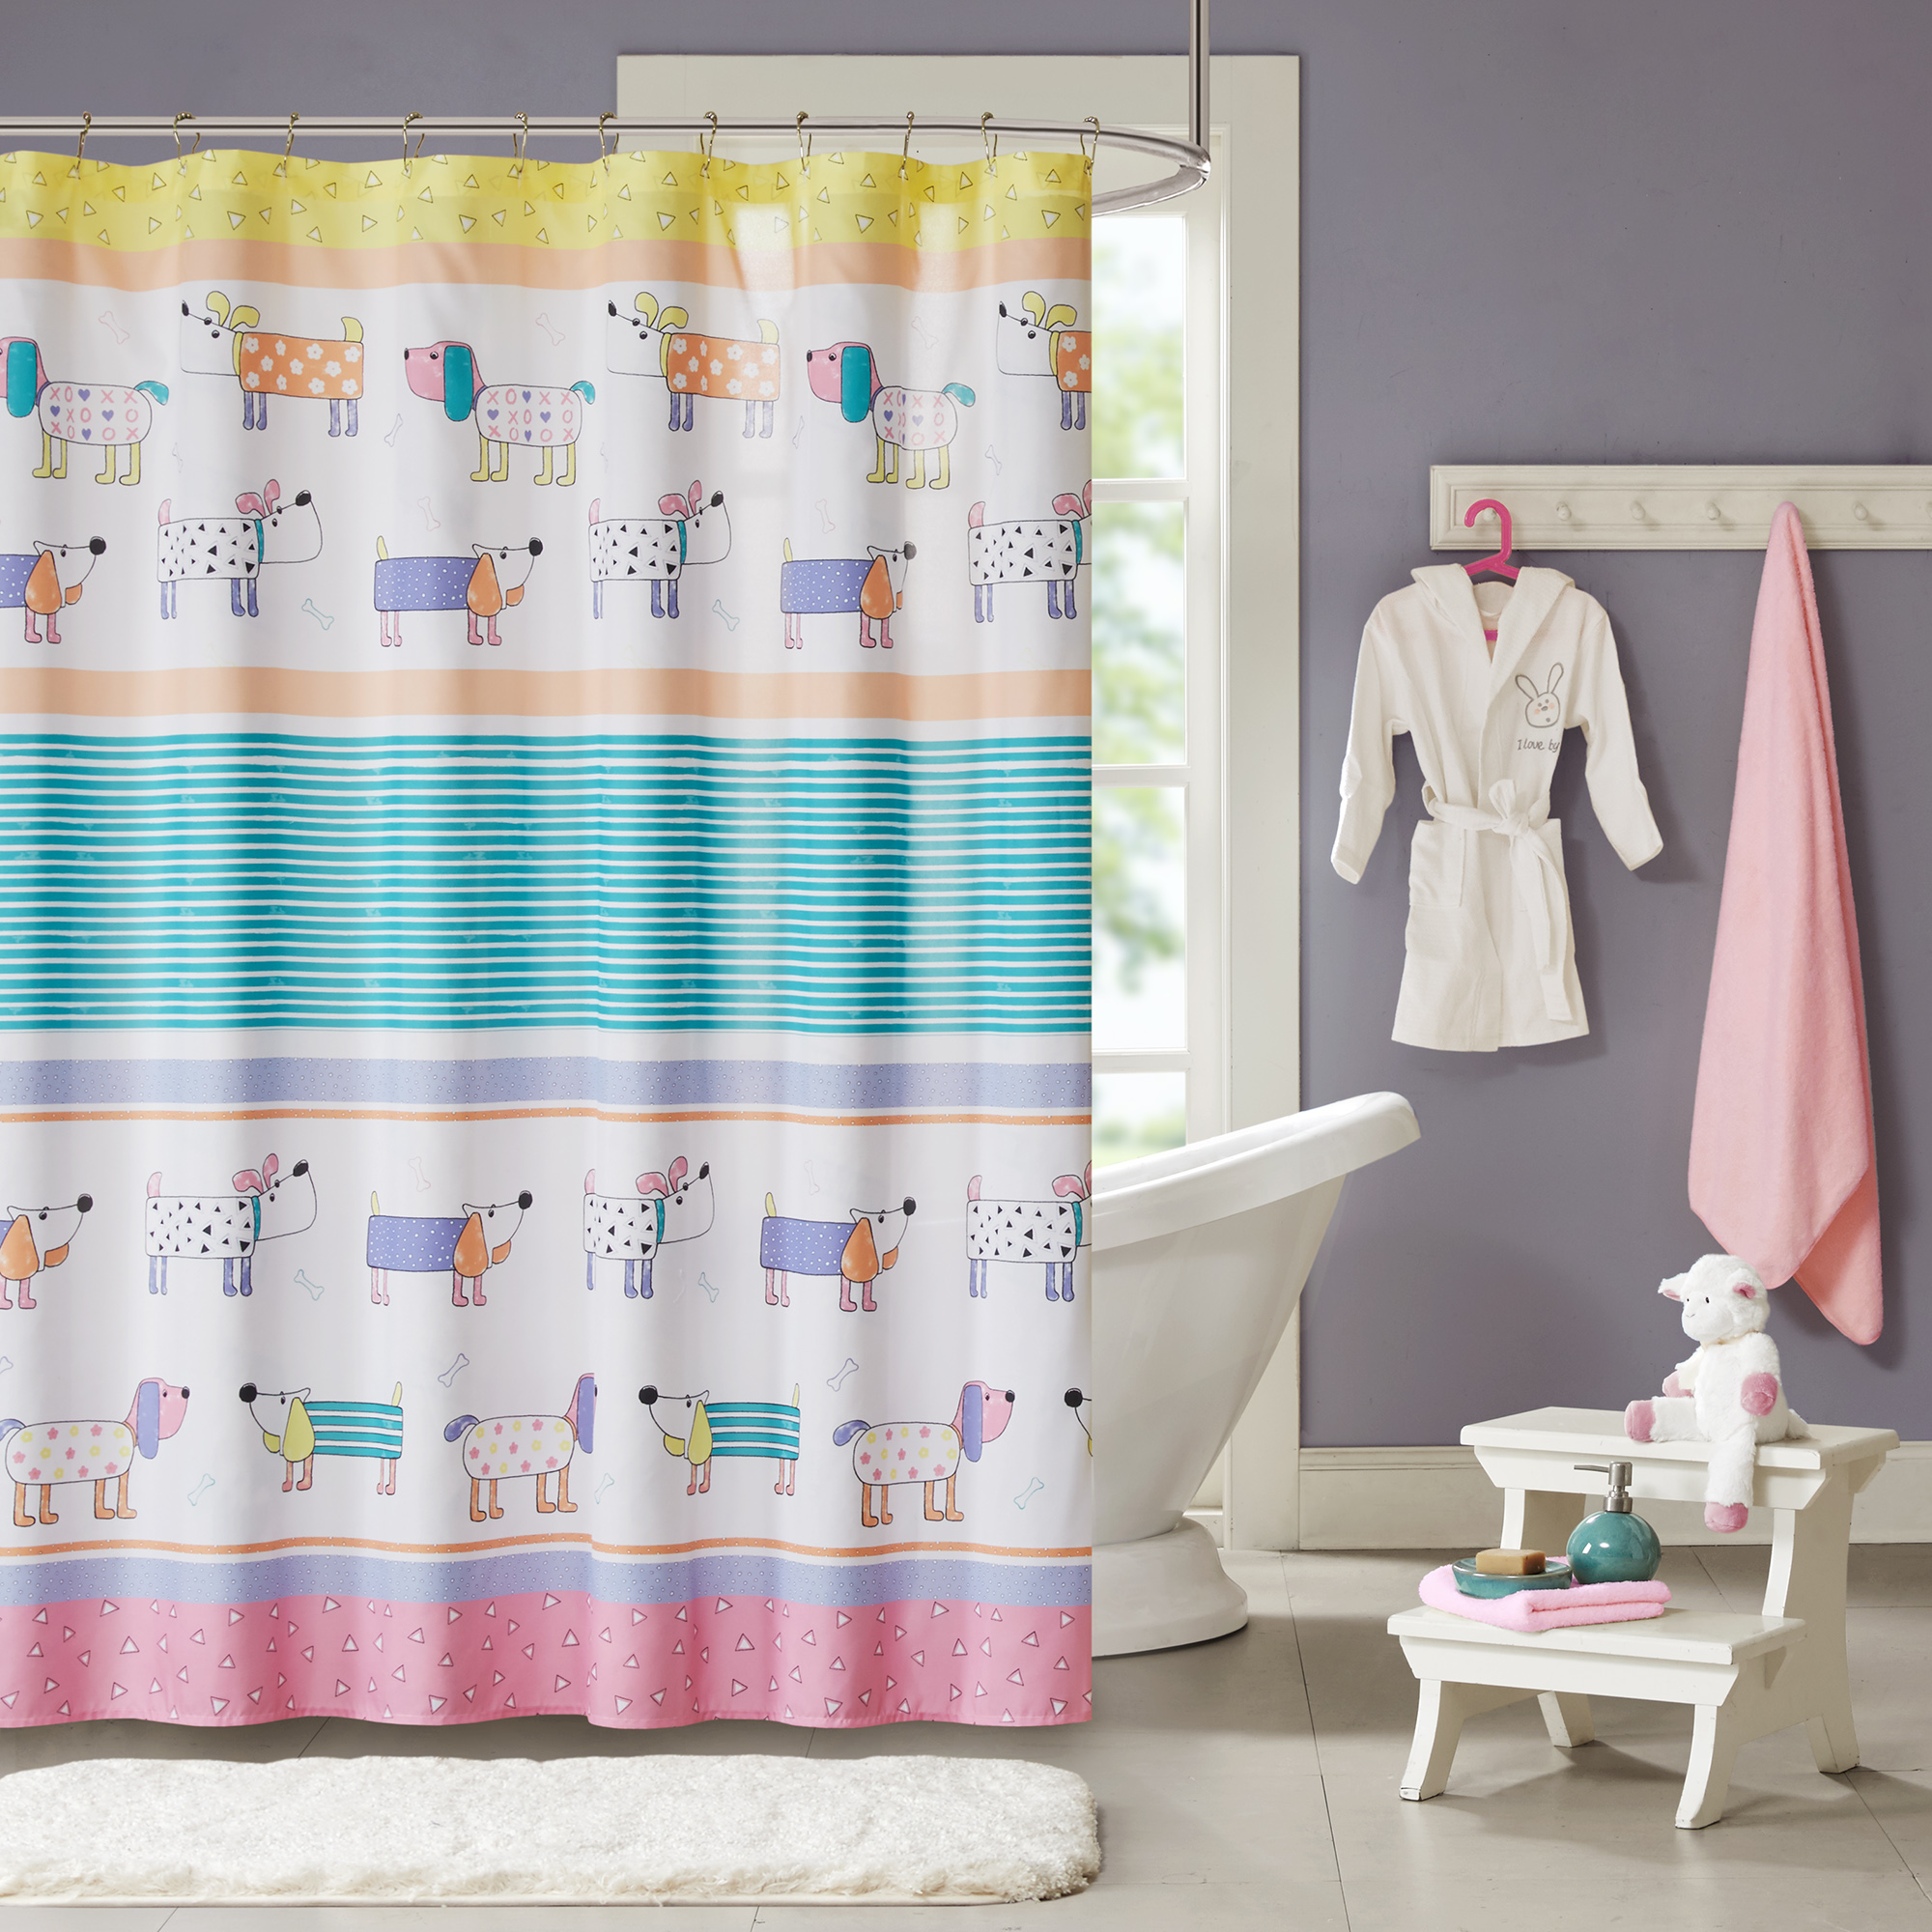 Home Essence Kids Chowder Printed Shower Curtain